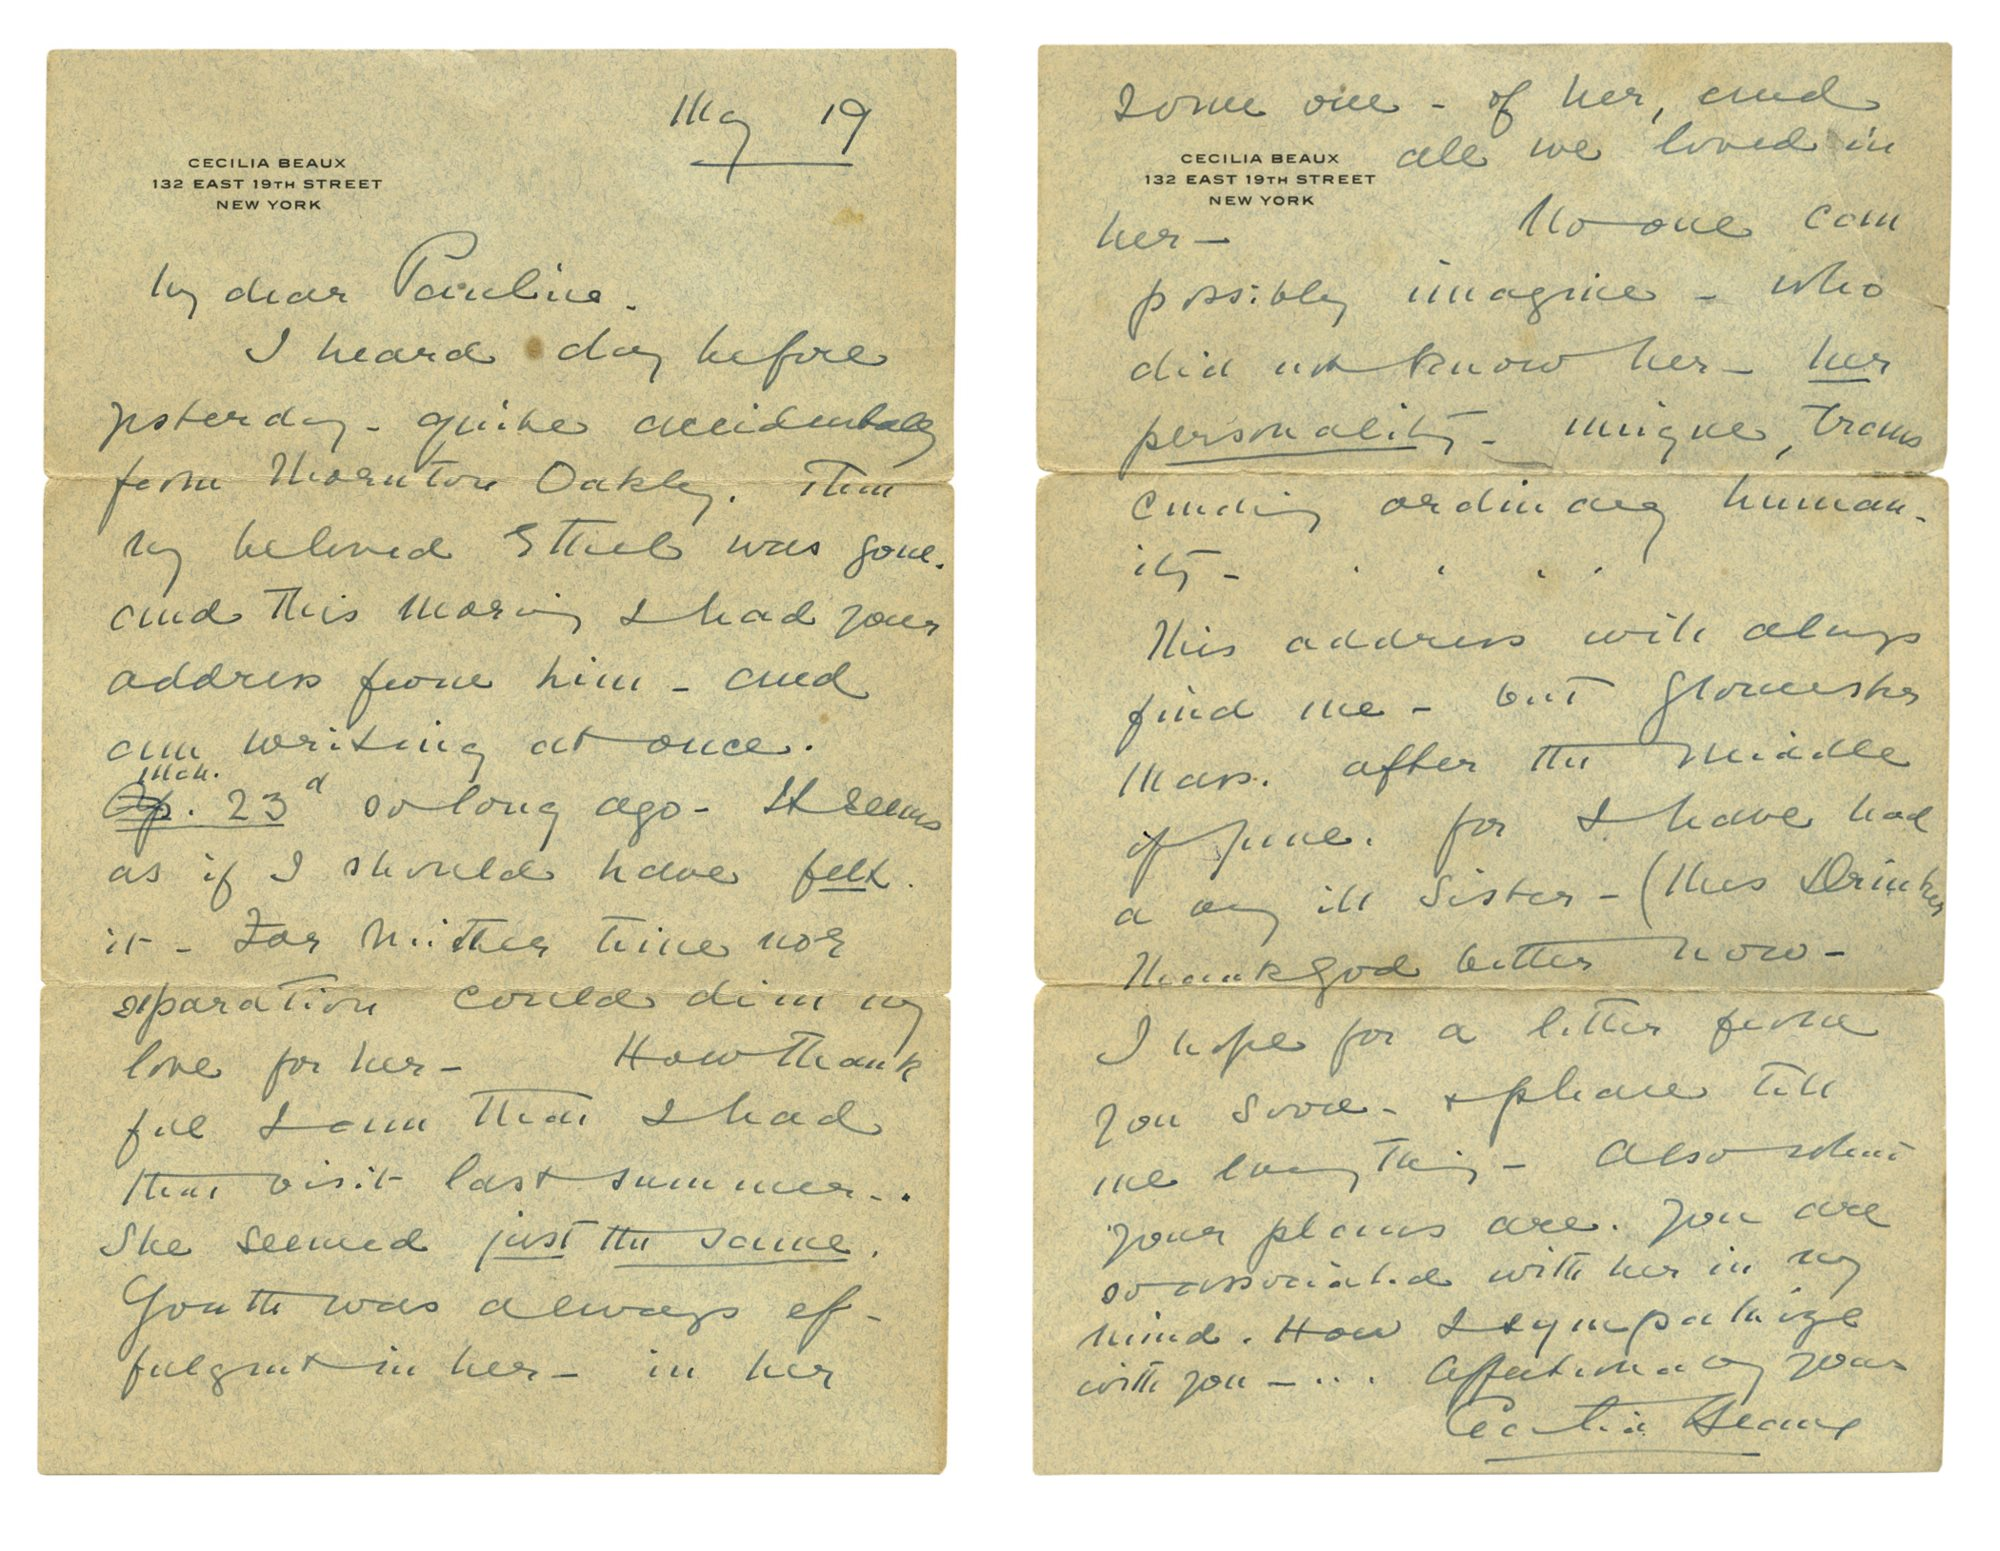 Letter from Cecilia Beaux to Pauline Bowie, dated May 19, 1934  |  To be offered with the painting